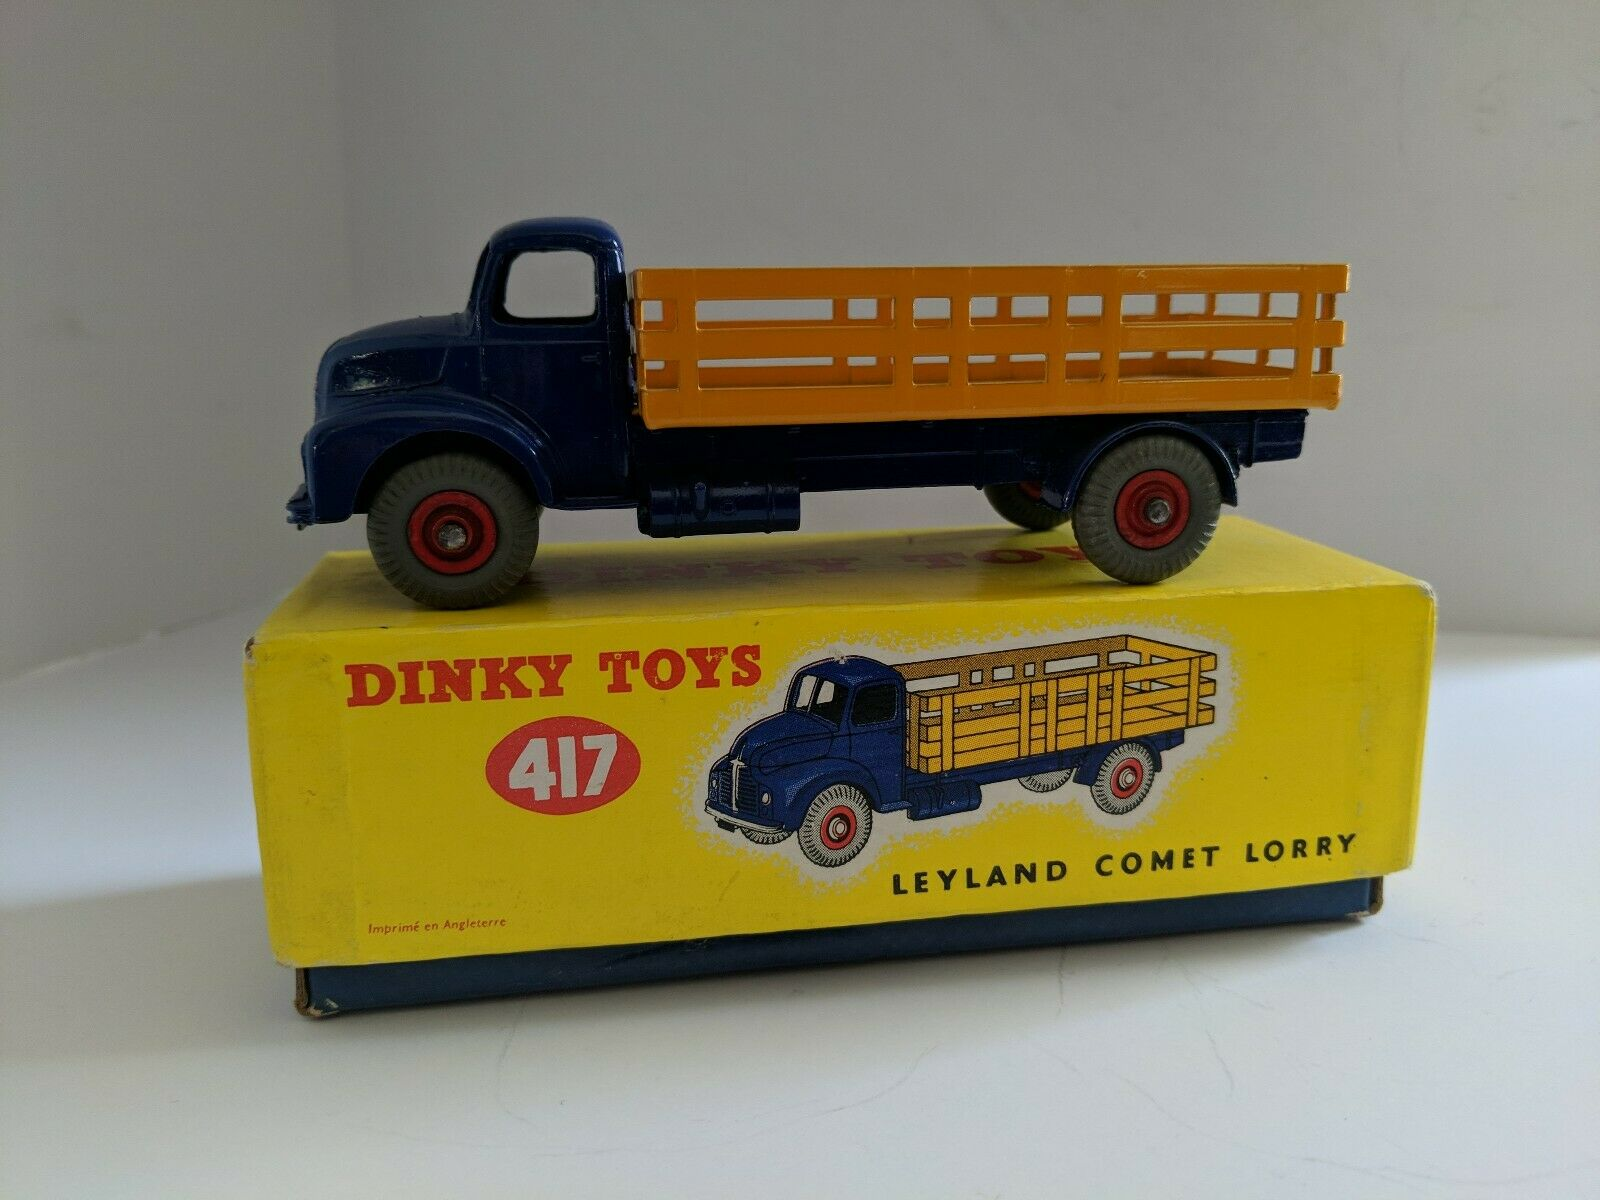 Dinky Toys 417 Leyland Comet Lorry, with Box. Rare in this condition. MINT